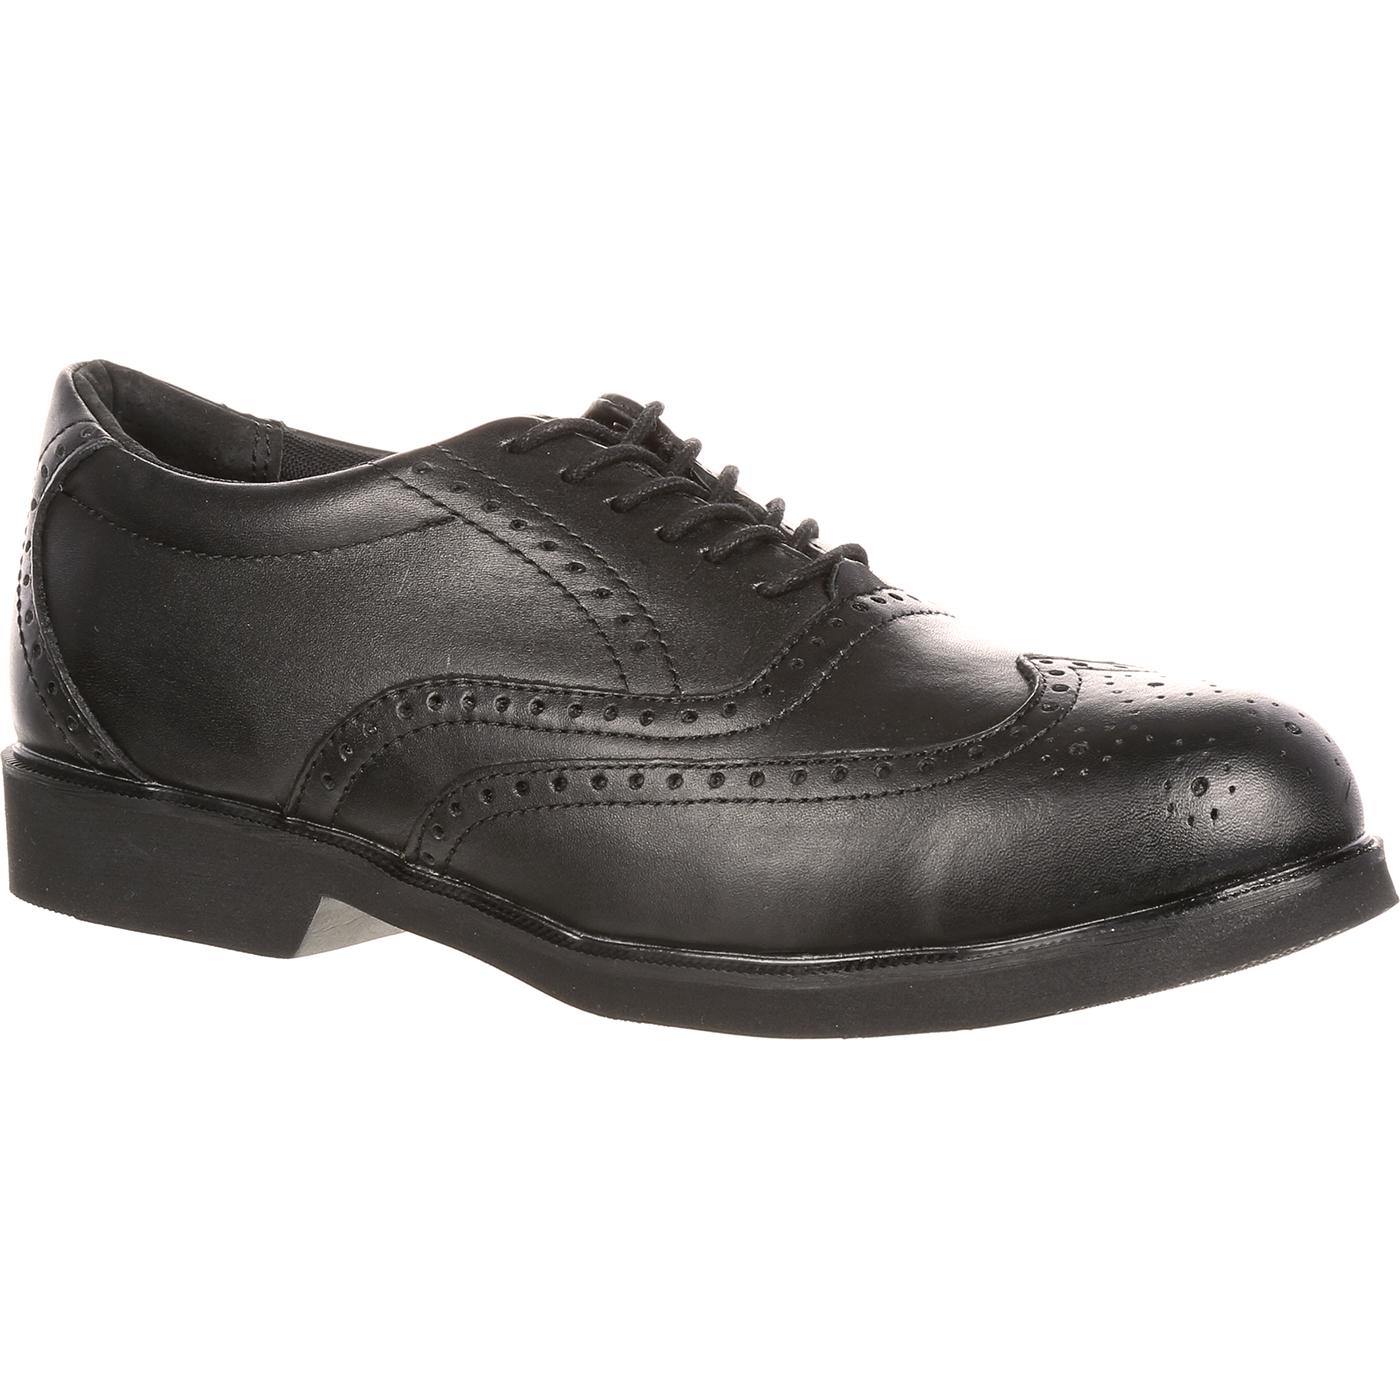 Rockport Works Dressports Steel Toe Dress Wingtip, , large